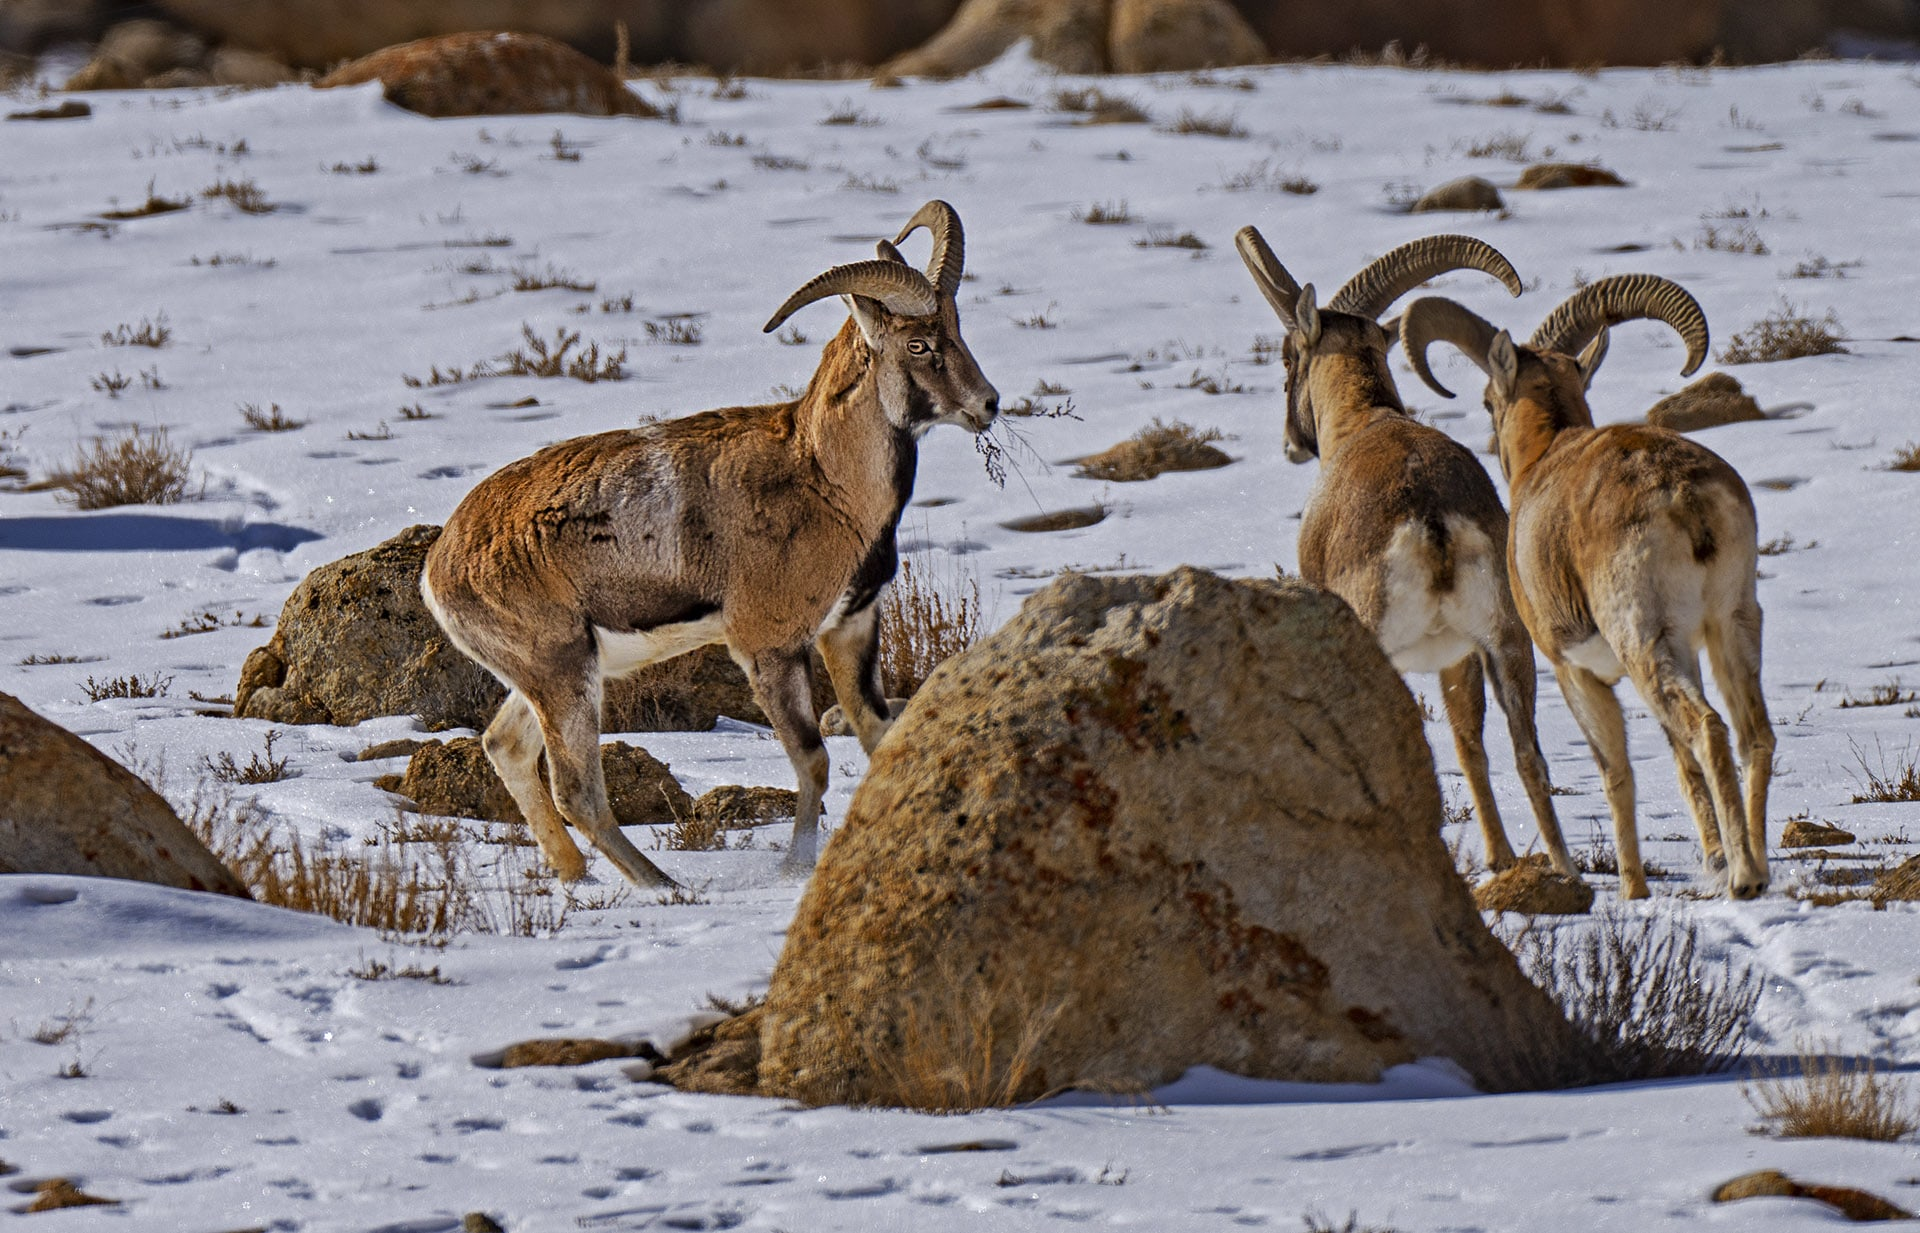 During winter urial move to relatively lower altitudes, presumably for better access to forage. Relatively warmer temperatures lower down might also help them with thermoregulation.  Photo: Dhritiman Mukherjee